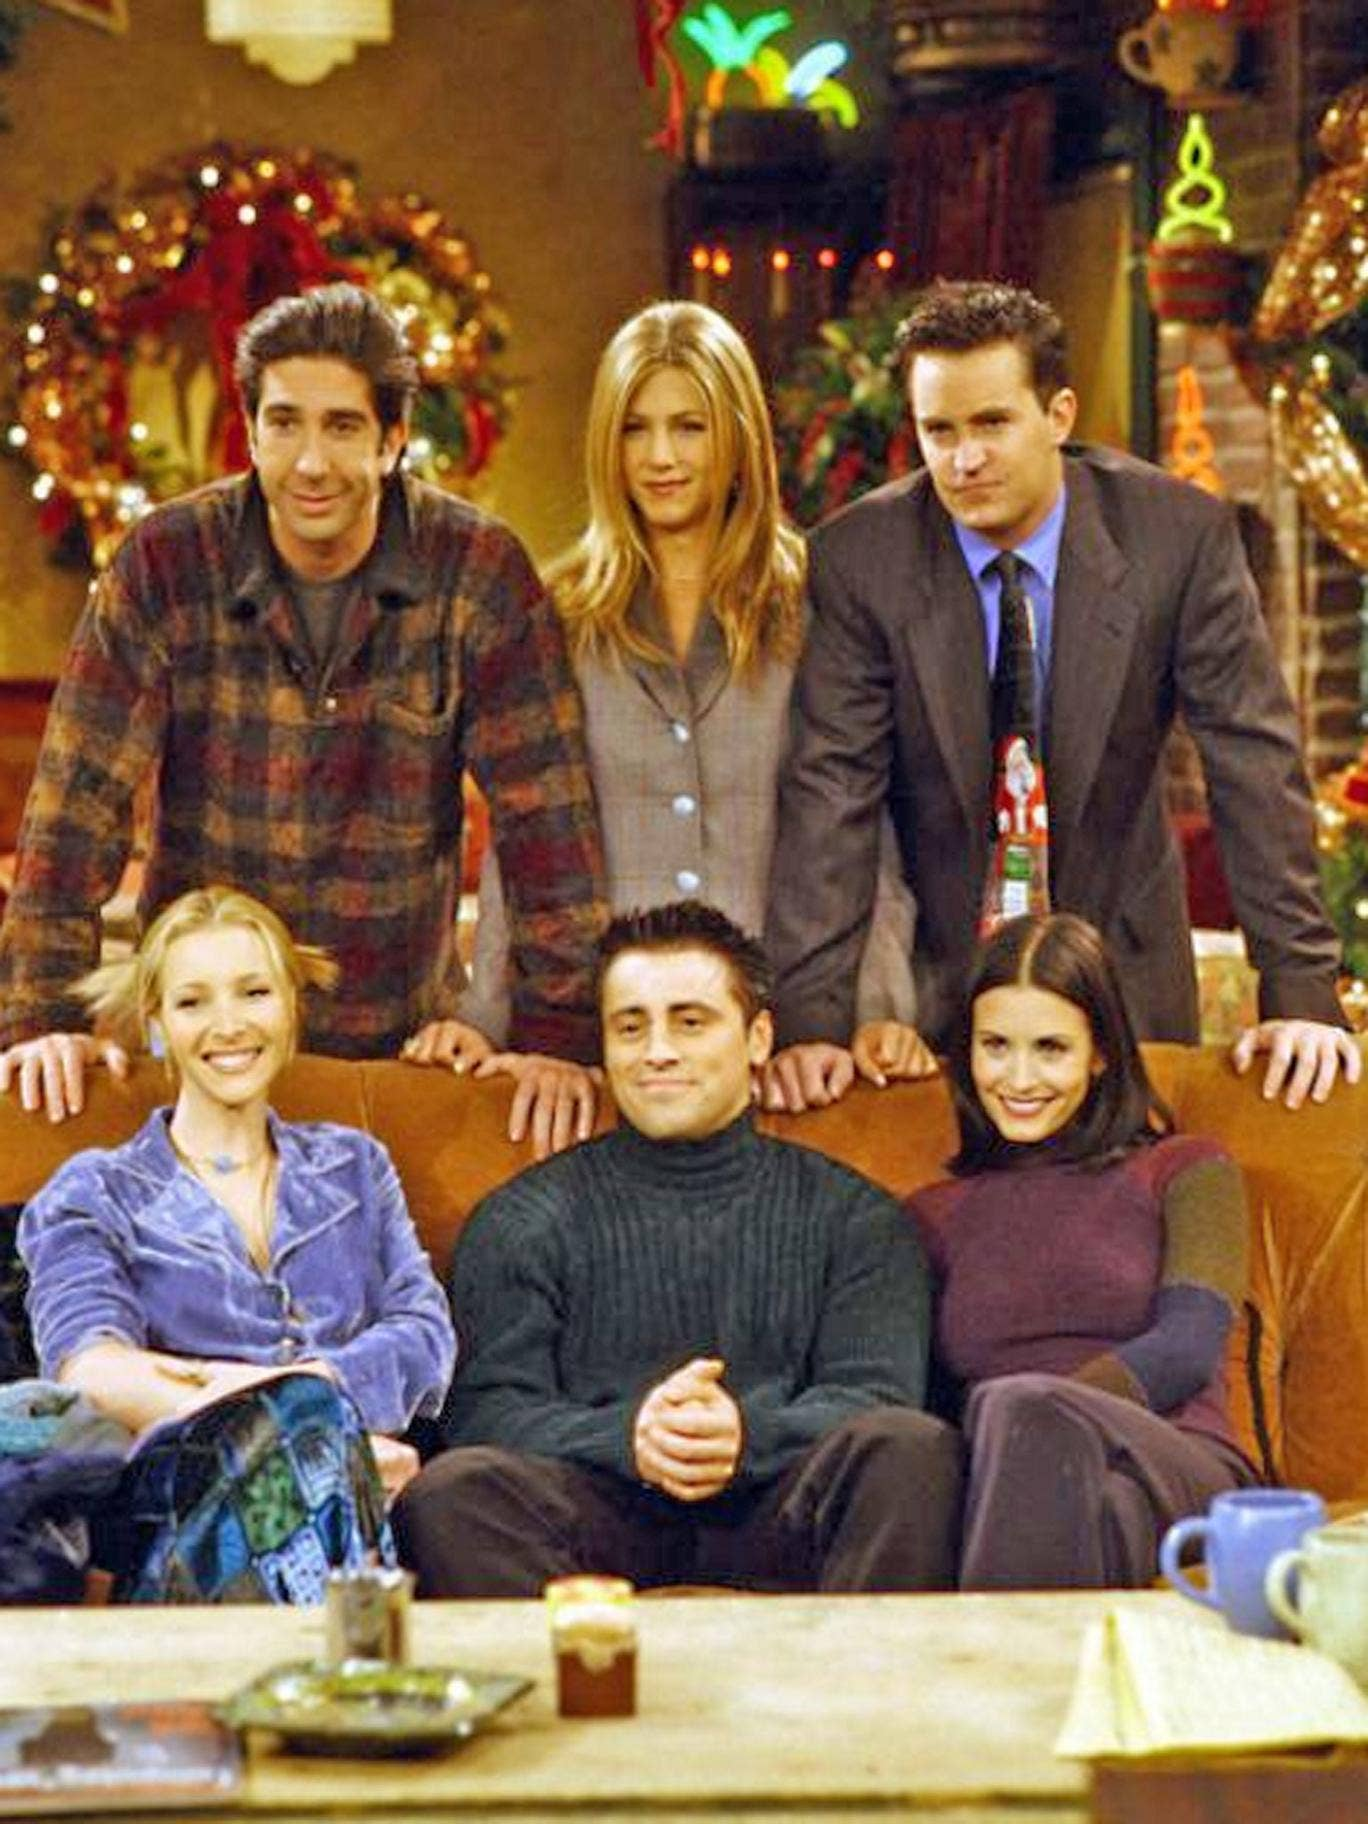 Friends is approaching its 20th anniversary and its popularity continues to grow